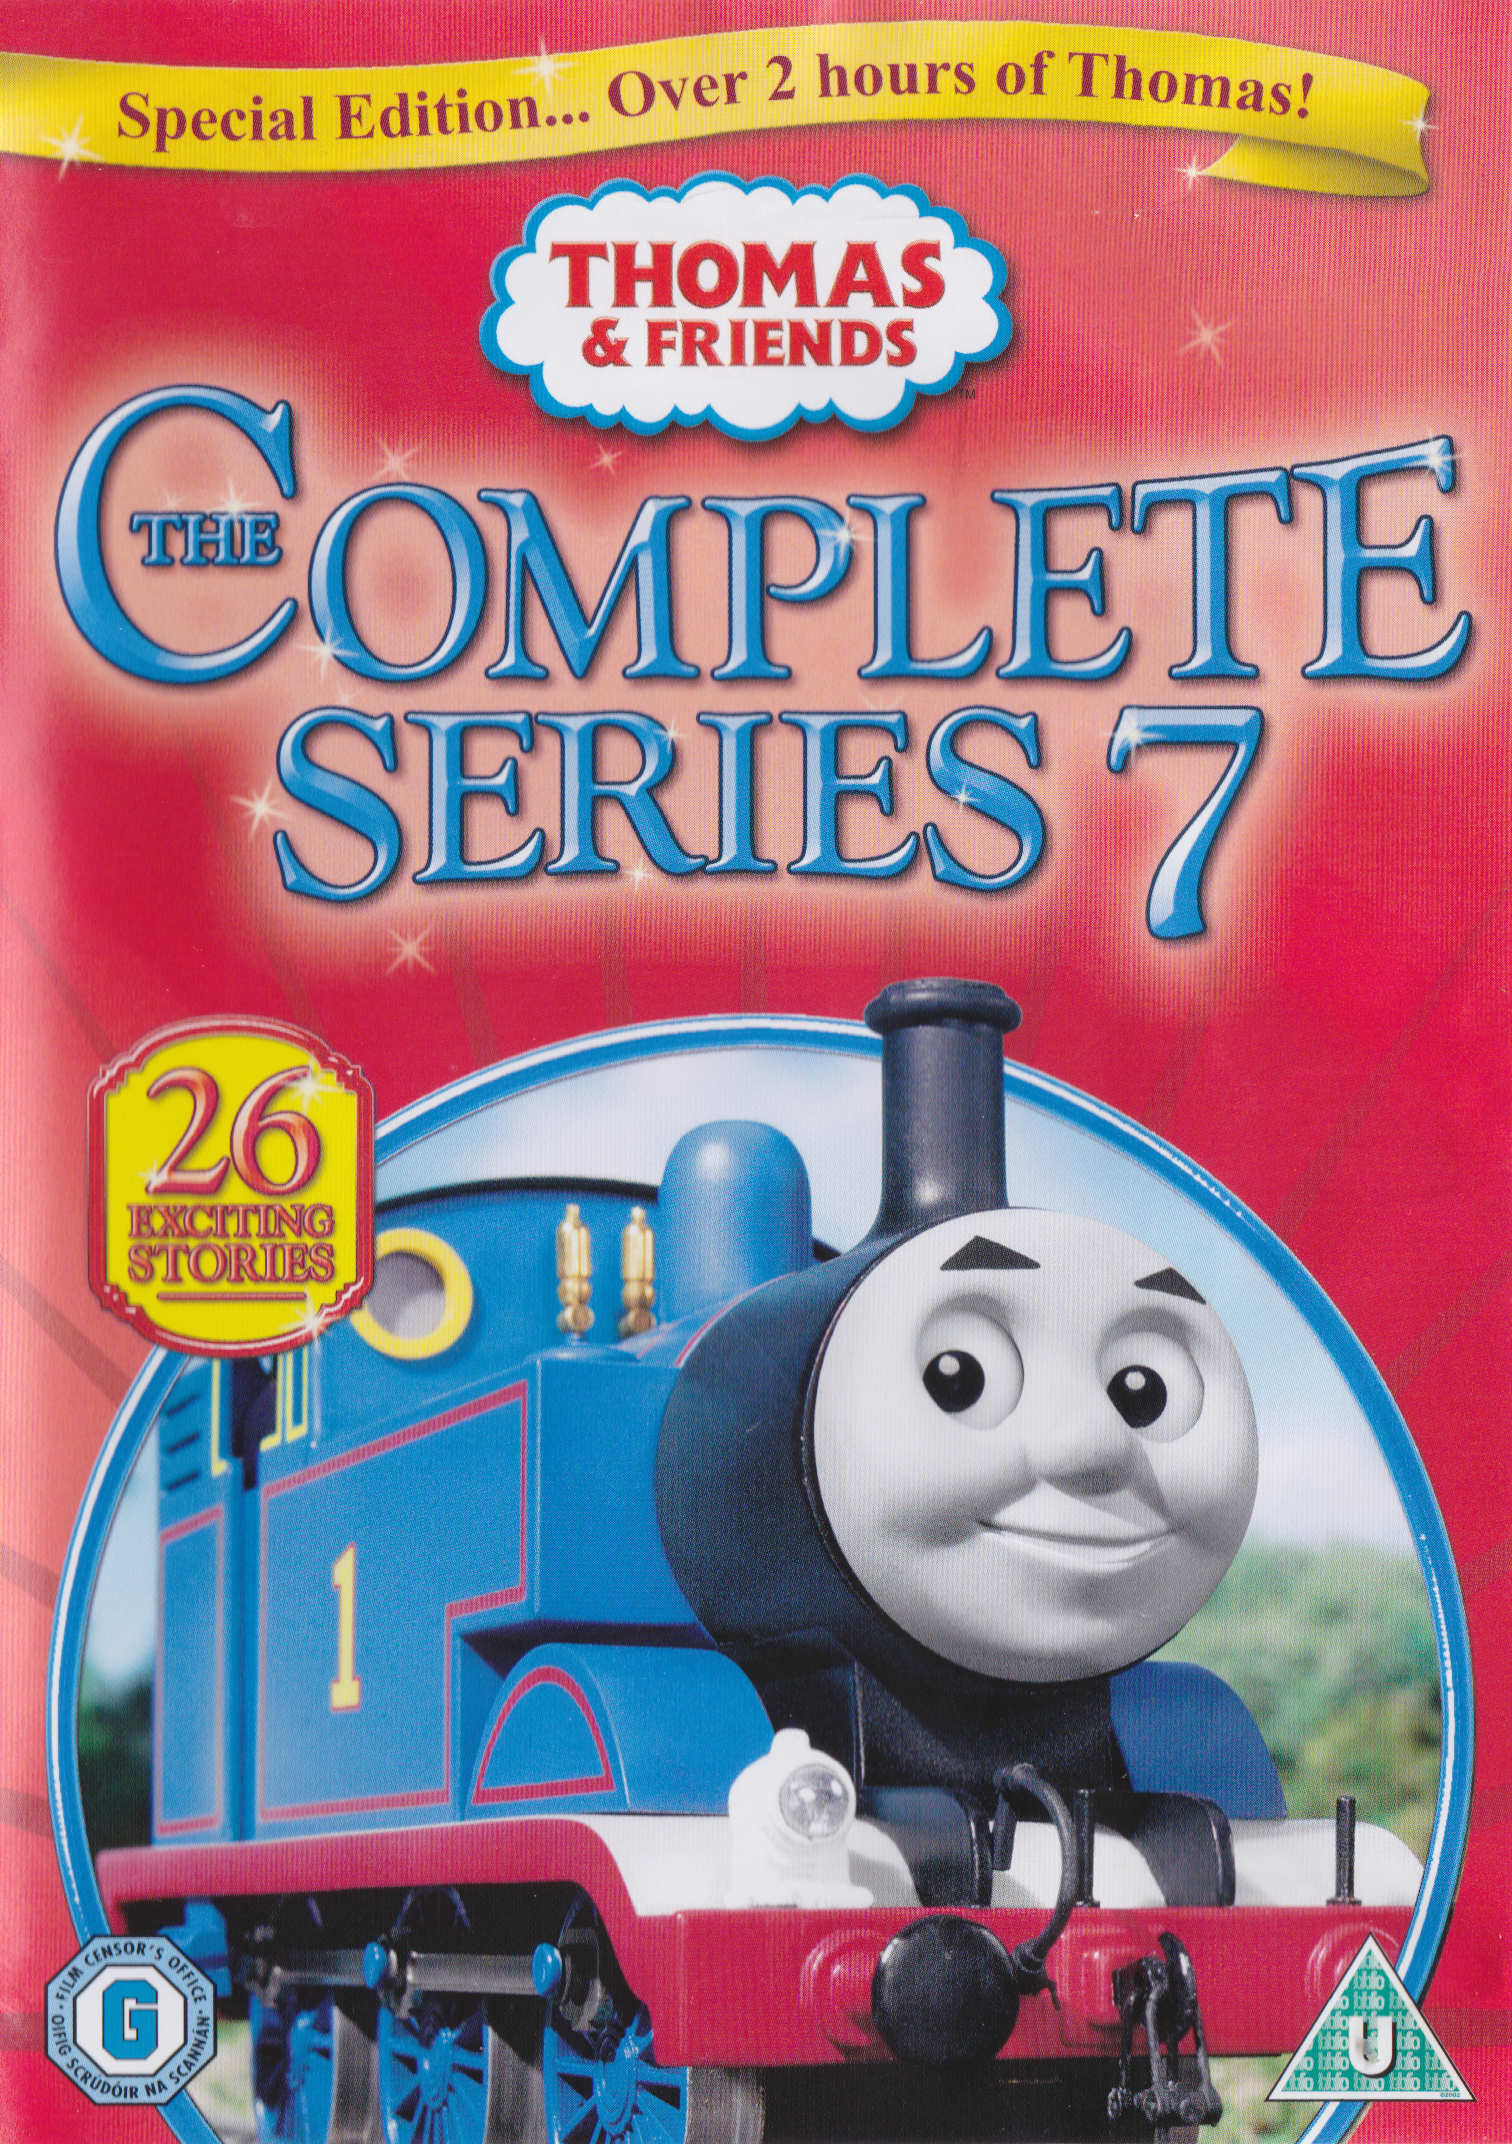 the complete seventh series thomas the tank engine wikia. Black Bedroom Furniture Sets. Home Design Ideas